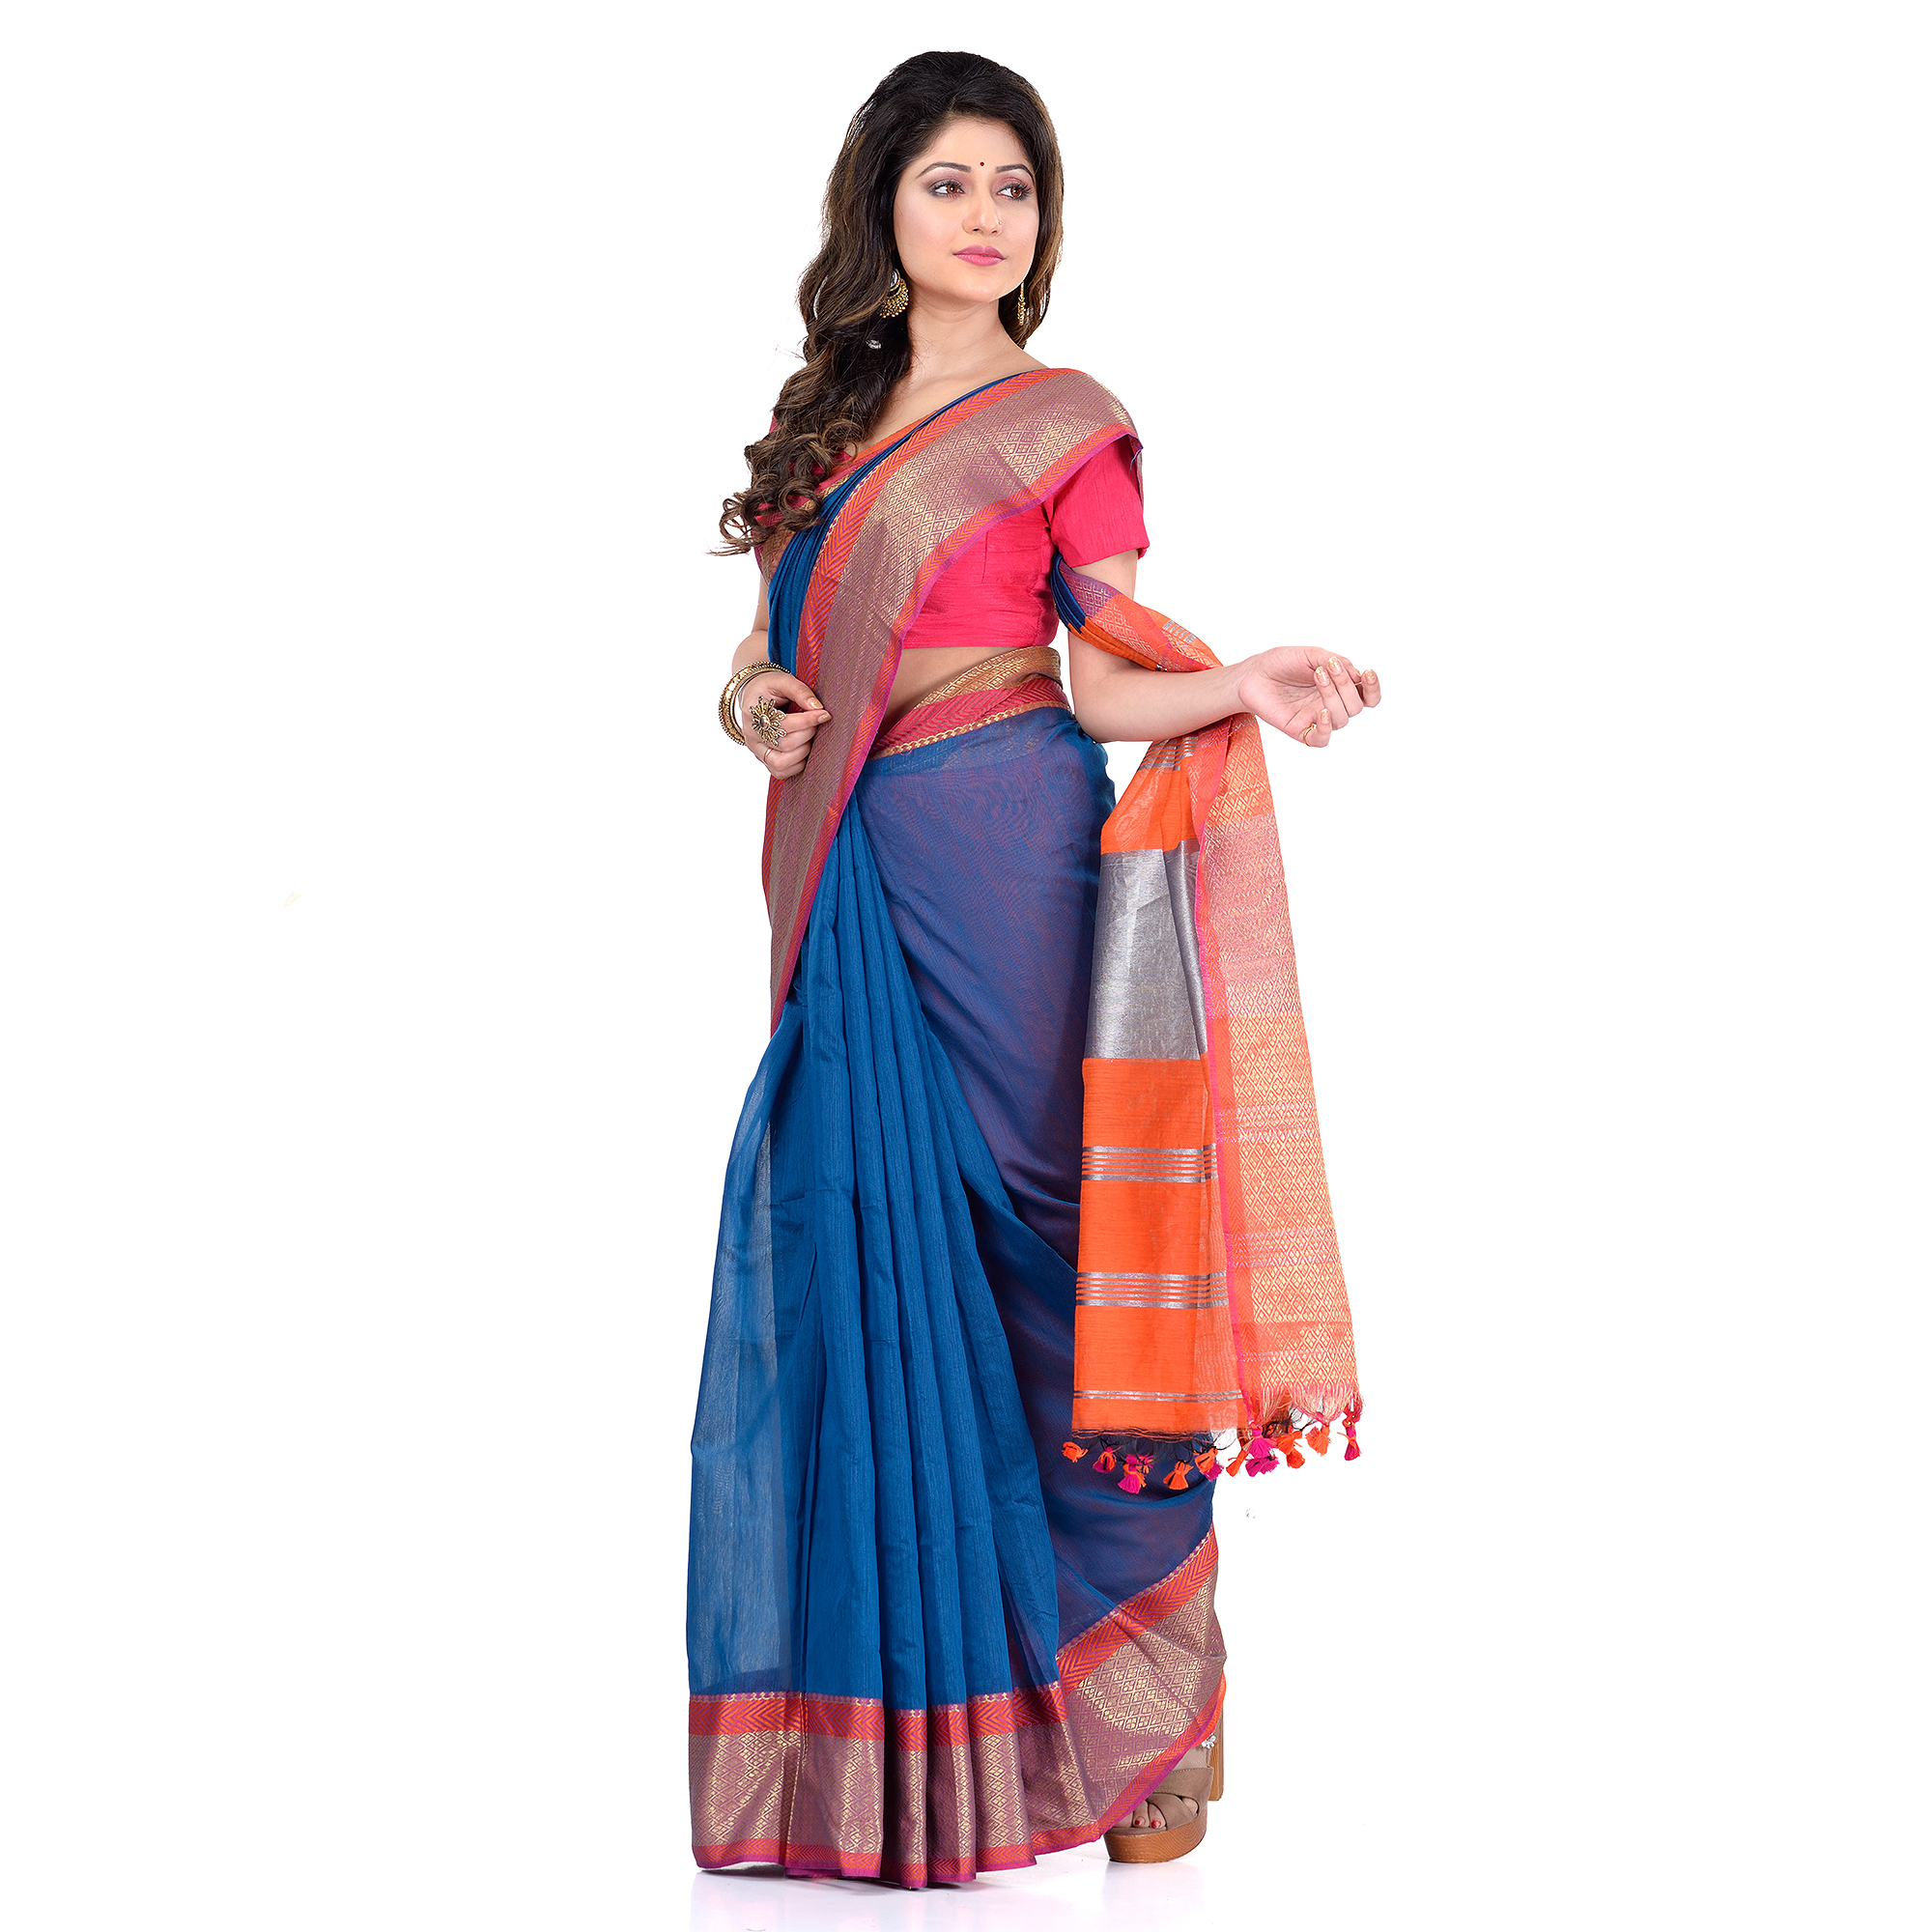 DESH BIDESH Women`s Handloom Cotton Silk Saree Jacquard Maheswari Design Zari Work With Blouse Piece(Blue Orange)